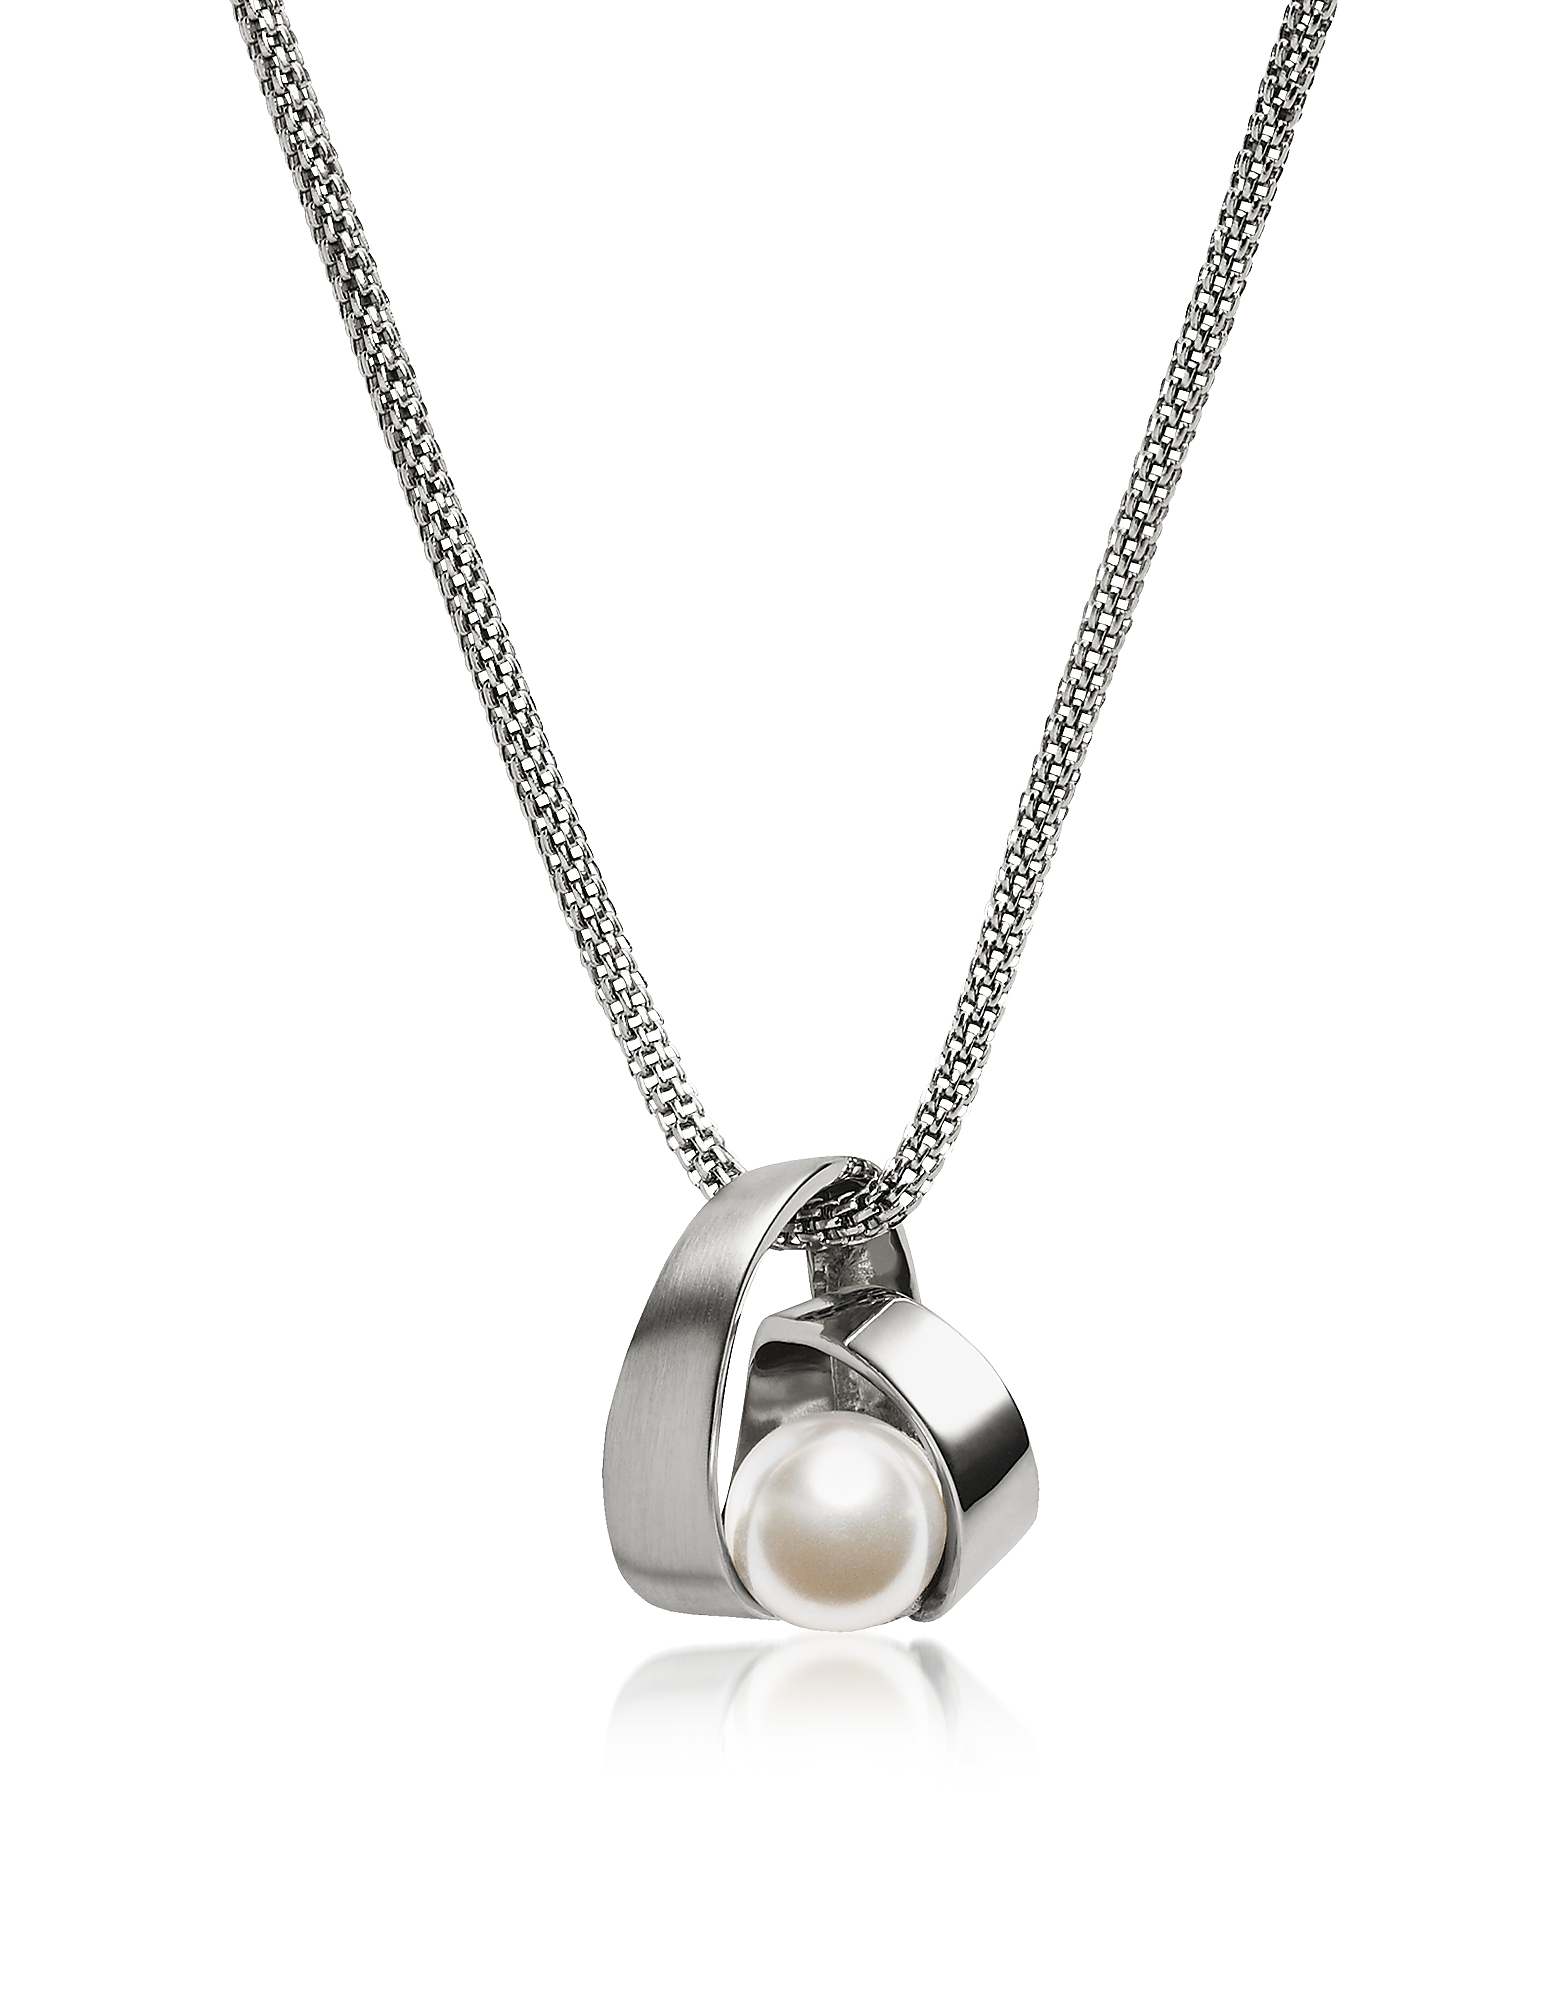 Skagen Necklaces, Agnethe Pearl Silver Tone Pendant Necklace